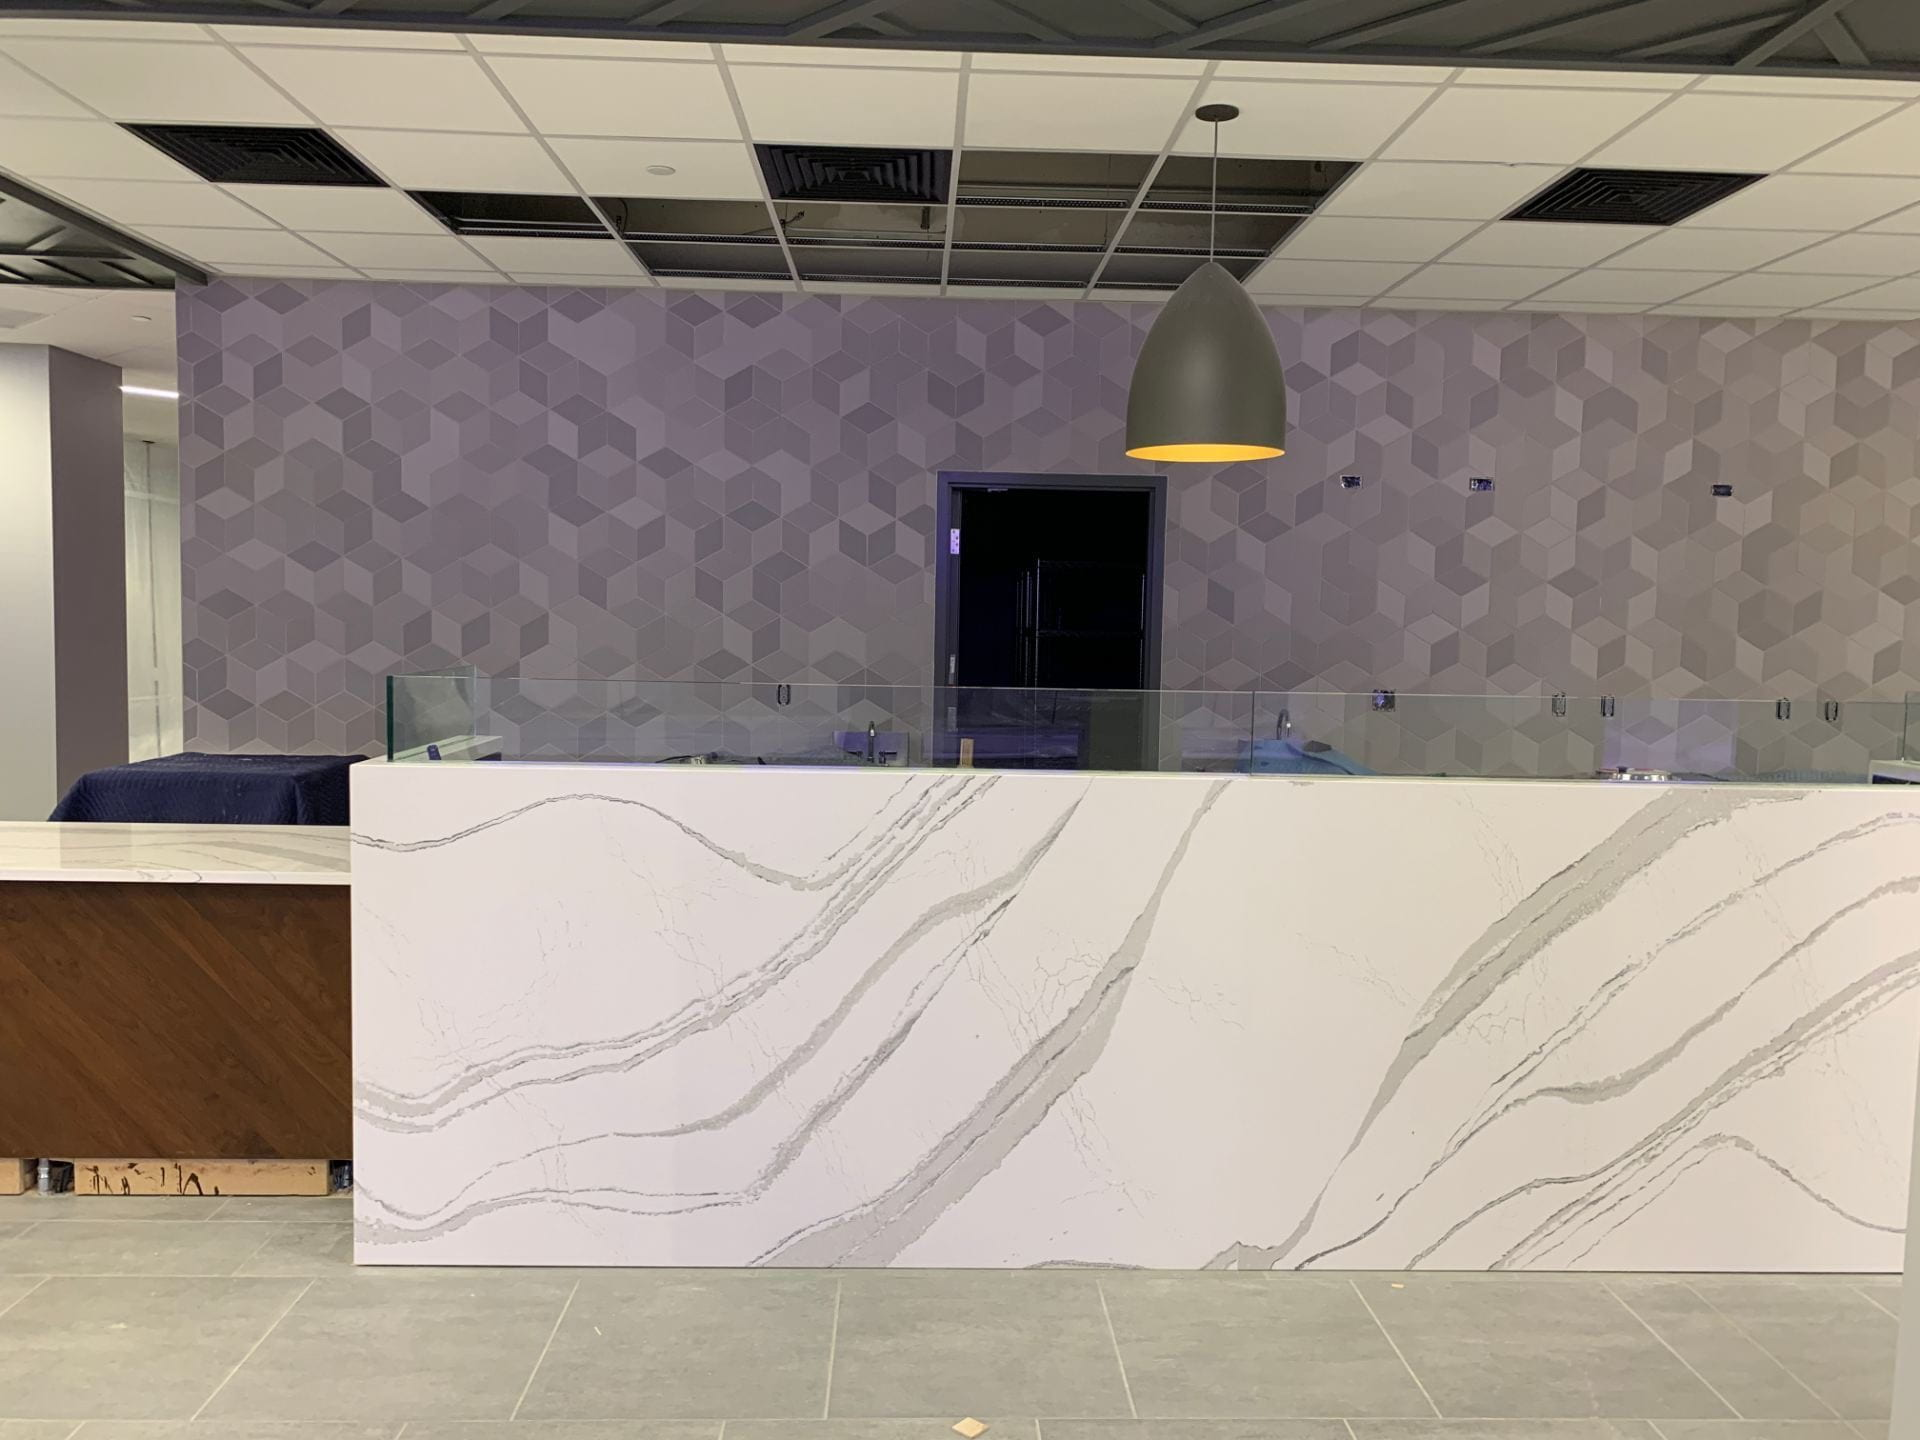 A picture of the faux marble counter in the cafe.